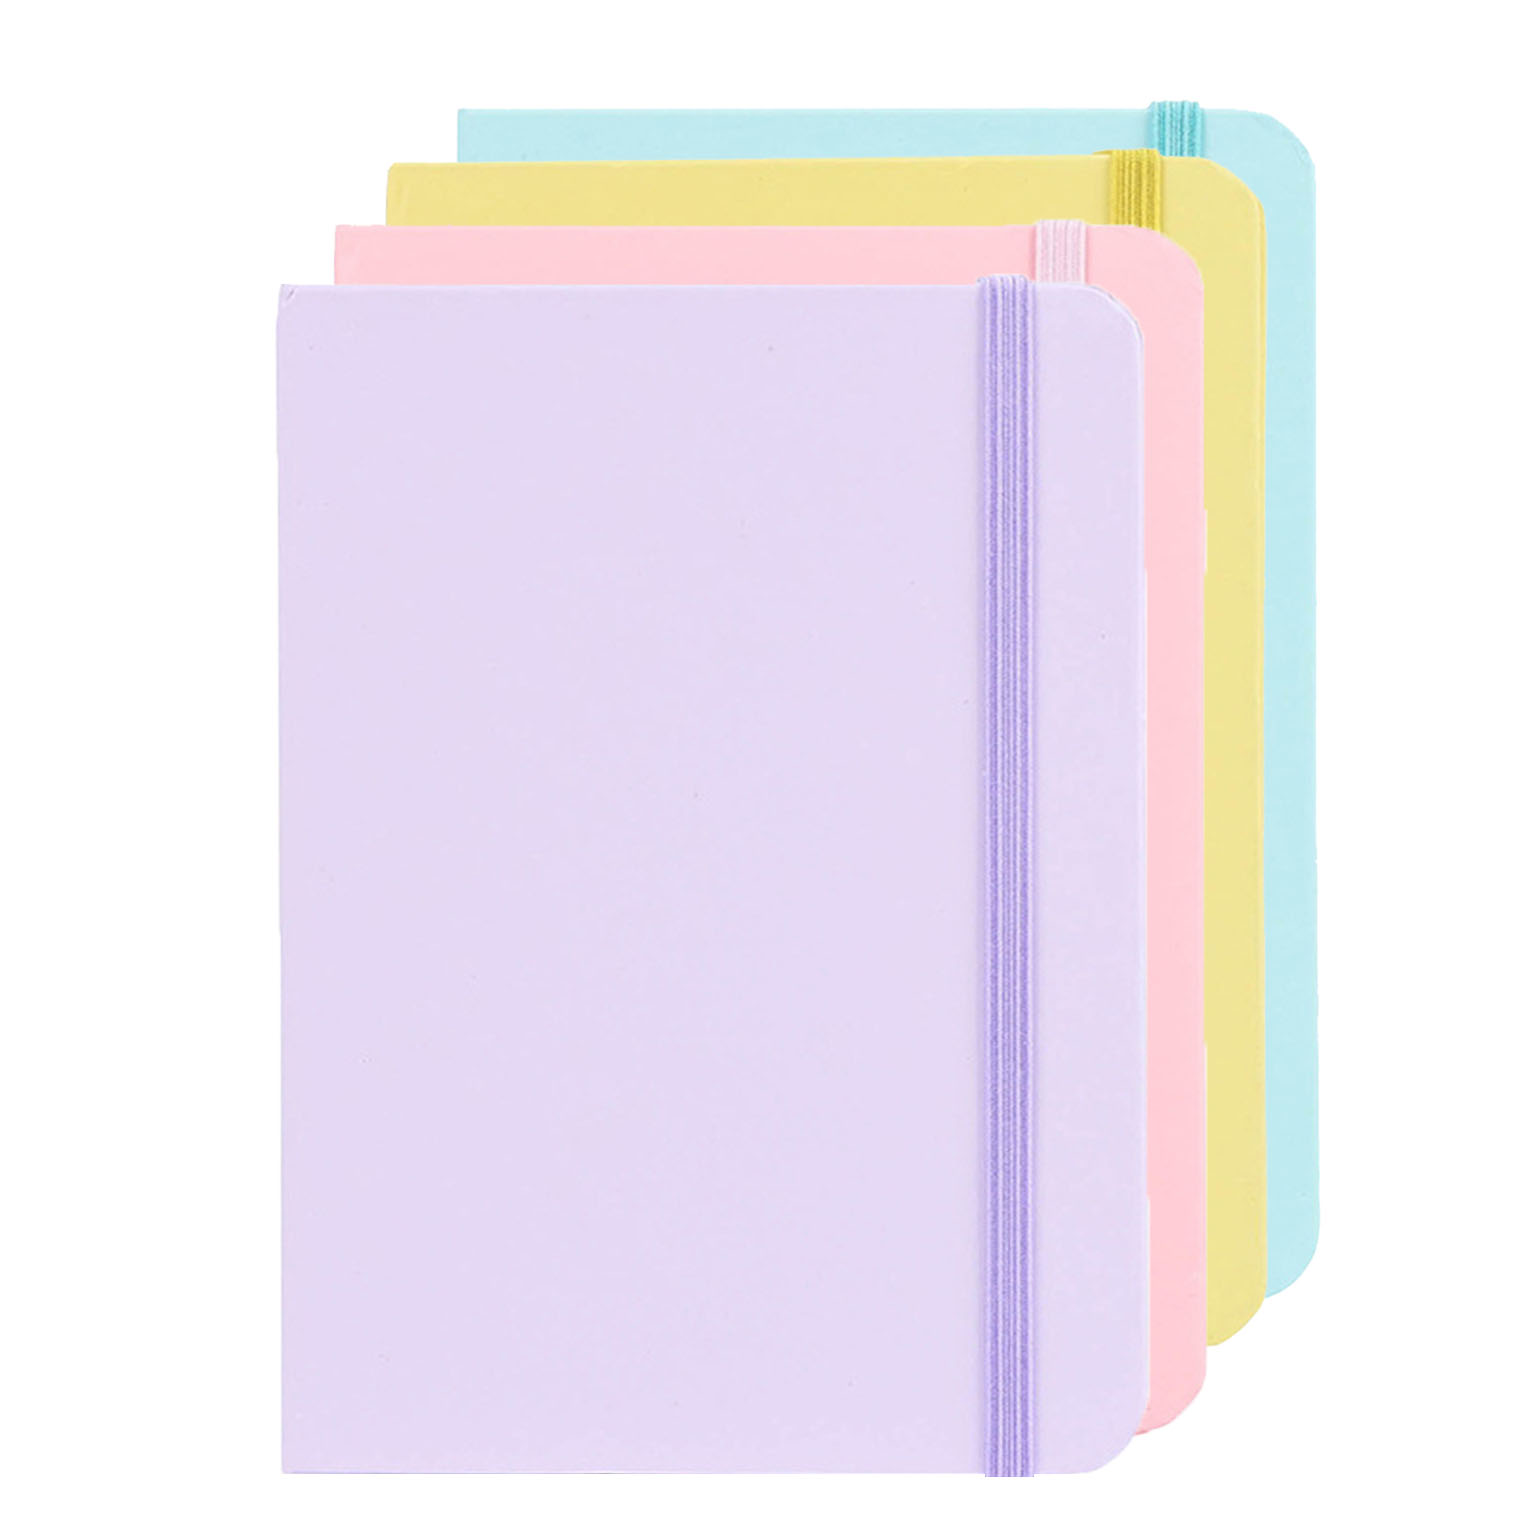 Pure Color A5 Hardcover Ruled Notebook Basic Macaron Notepad Student Journal Lovely School Office Supplies Cute Stationary